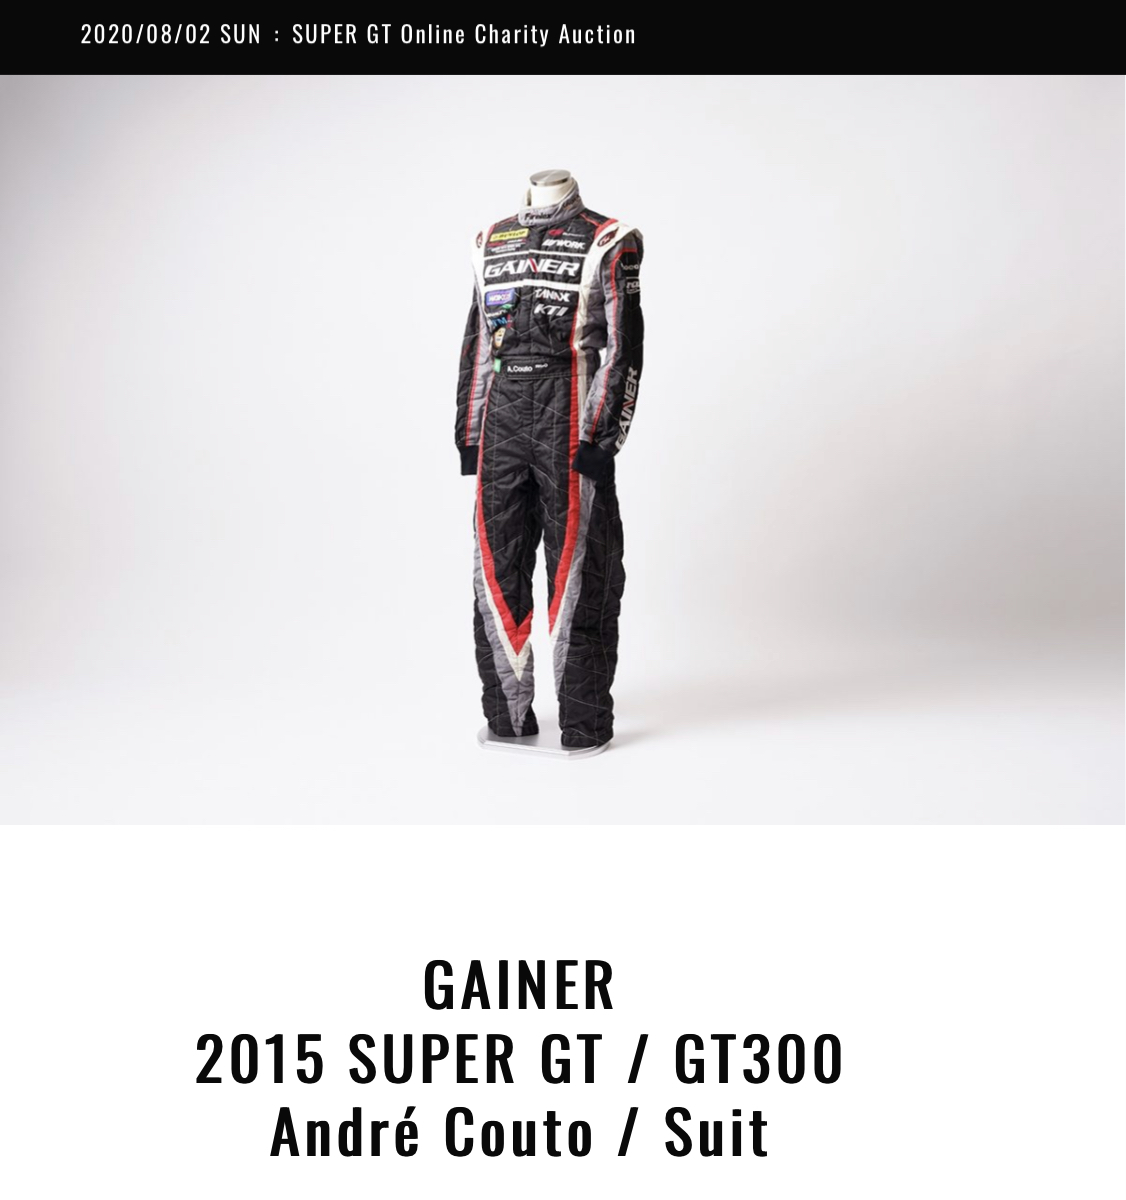 SUPER GT Online Charity Auction